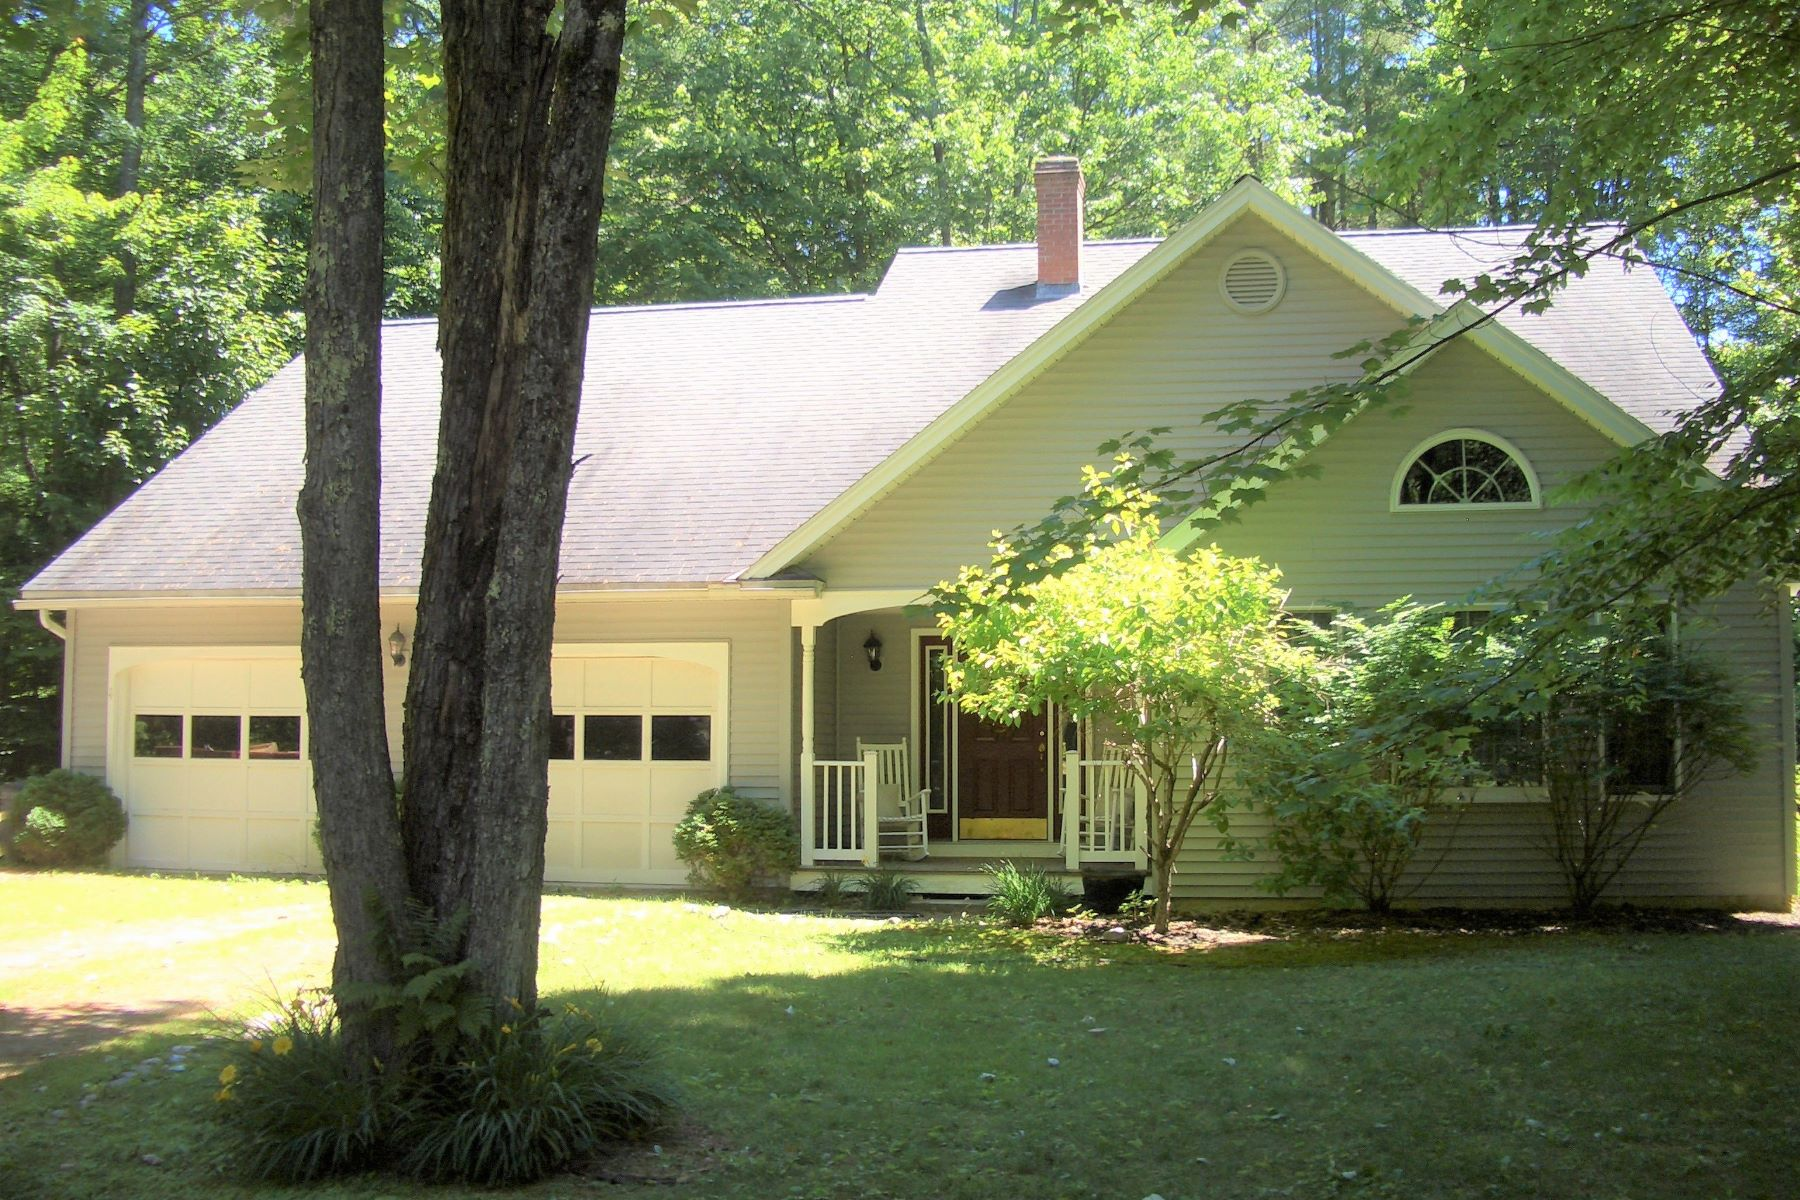 Single Family Home for Sale at Spring Wood Acres Contemporary Cape 177 Woodland Dr Pittsford, Vermont 05763 United States